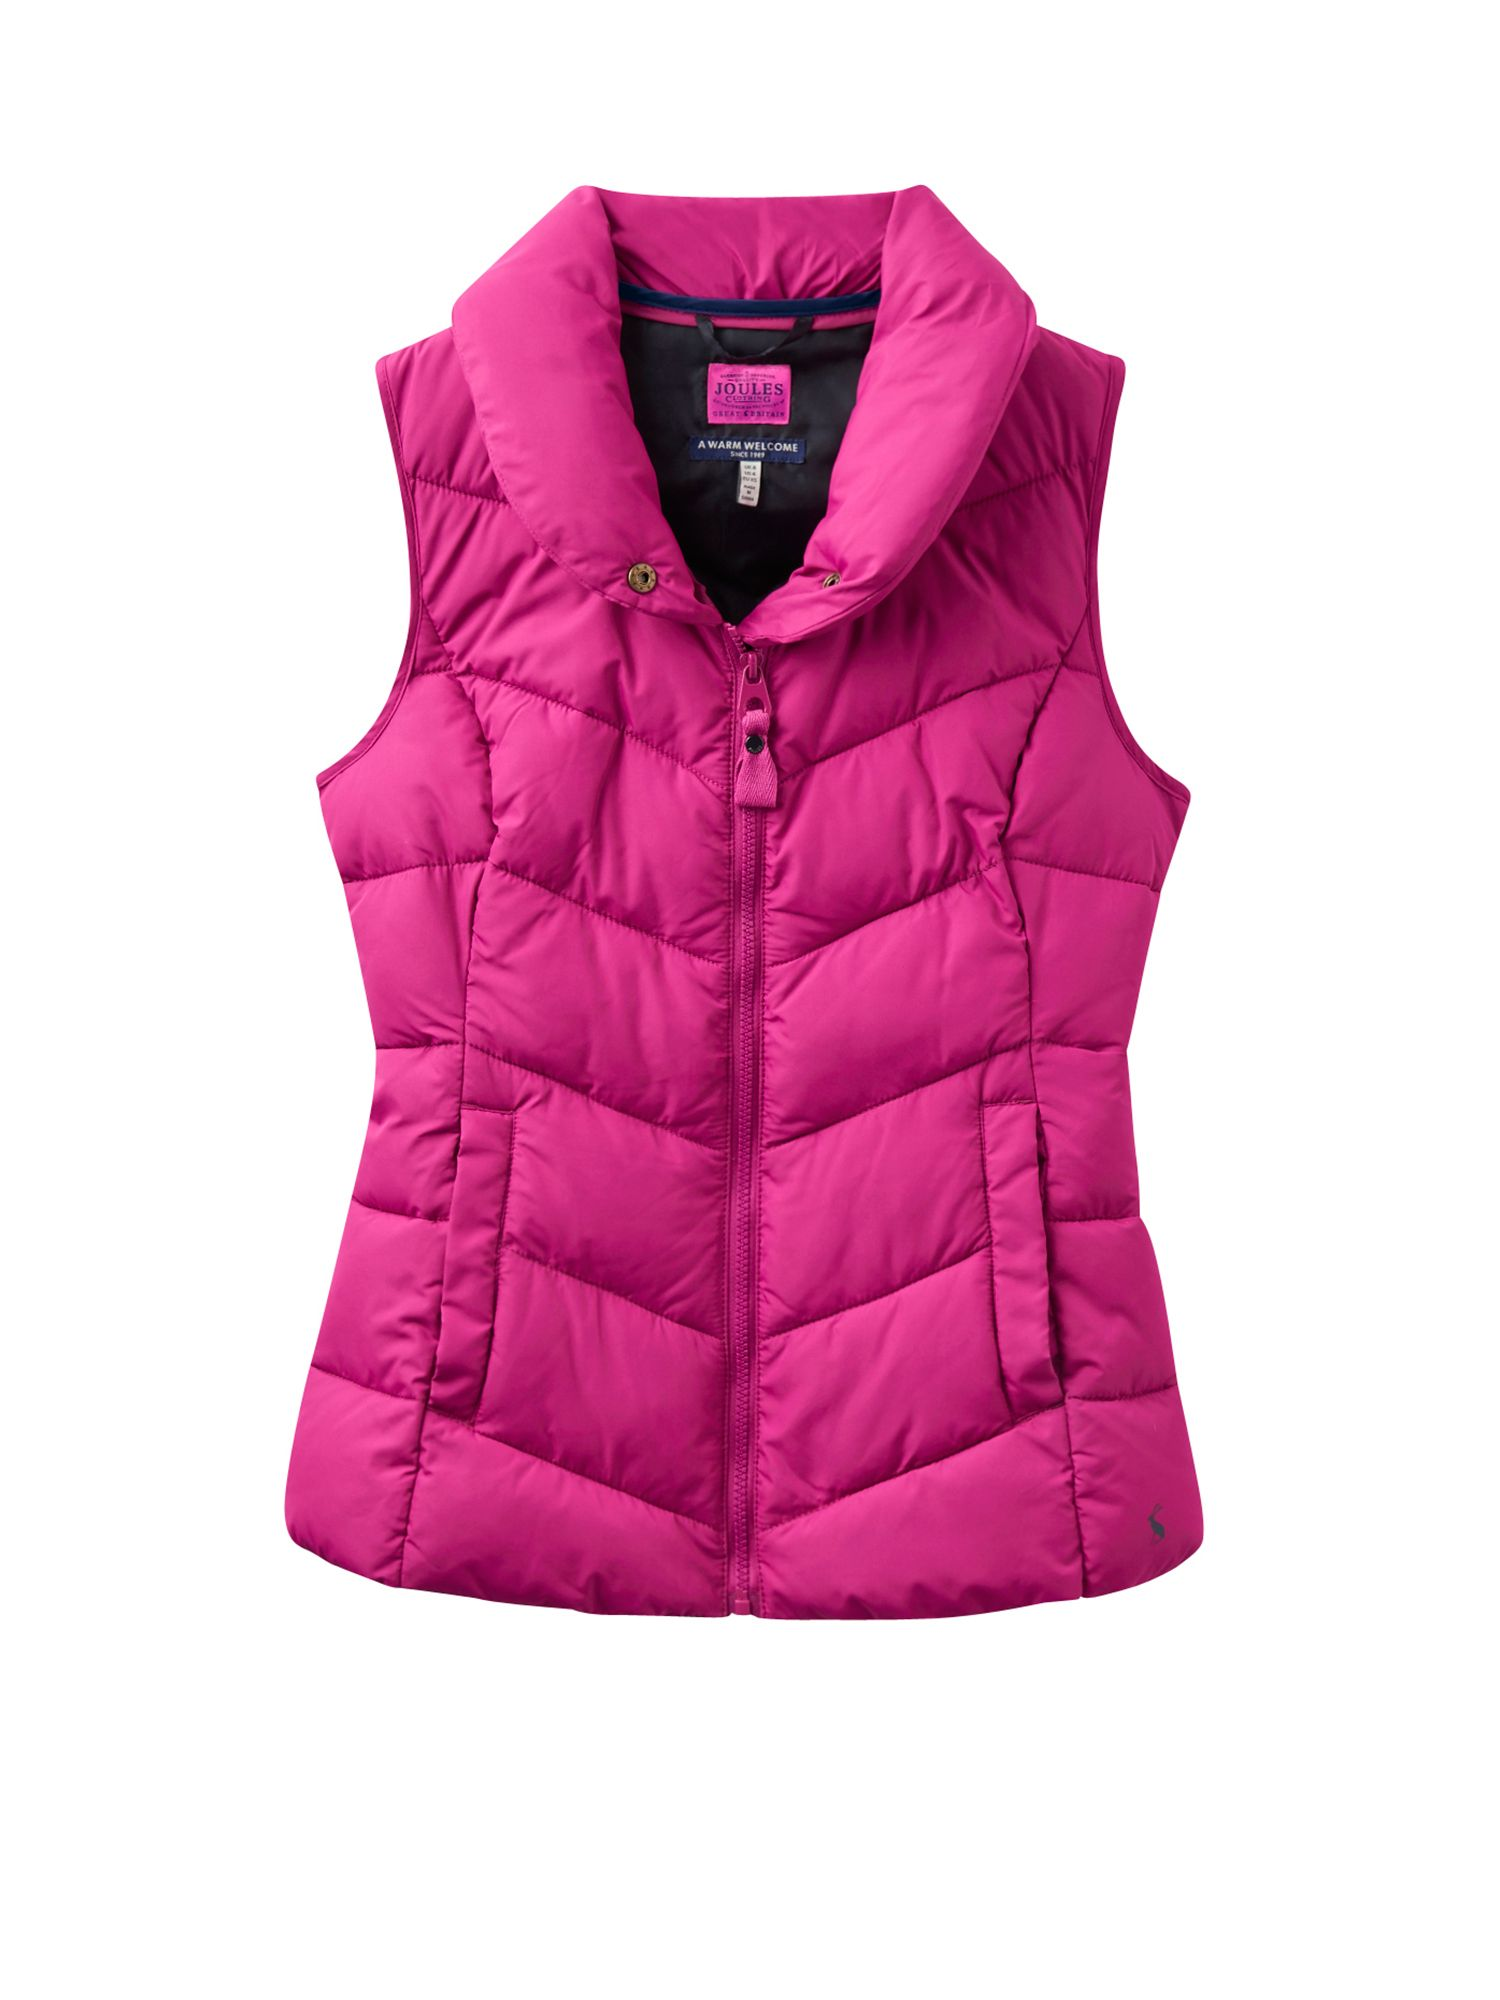 Joules Padded High Neck Gilet, Pink